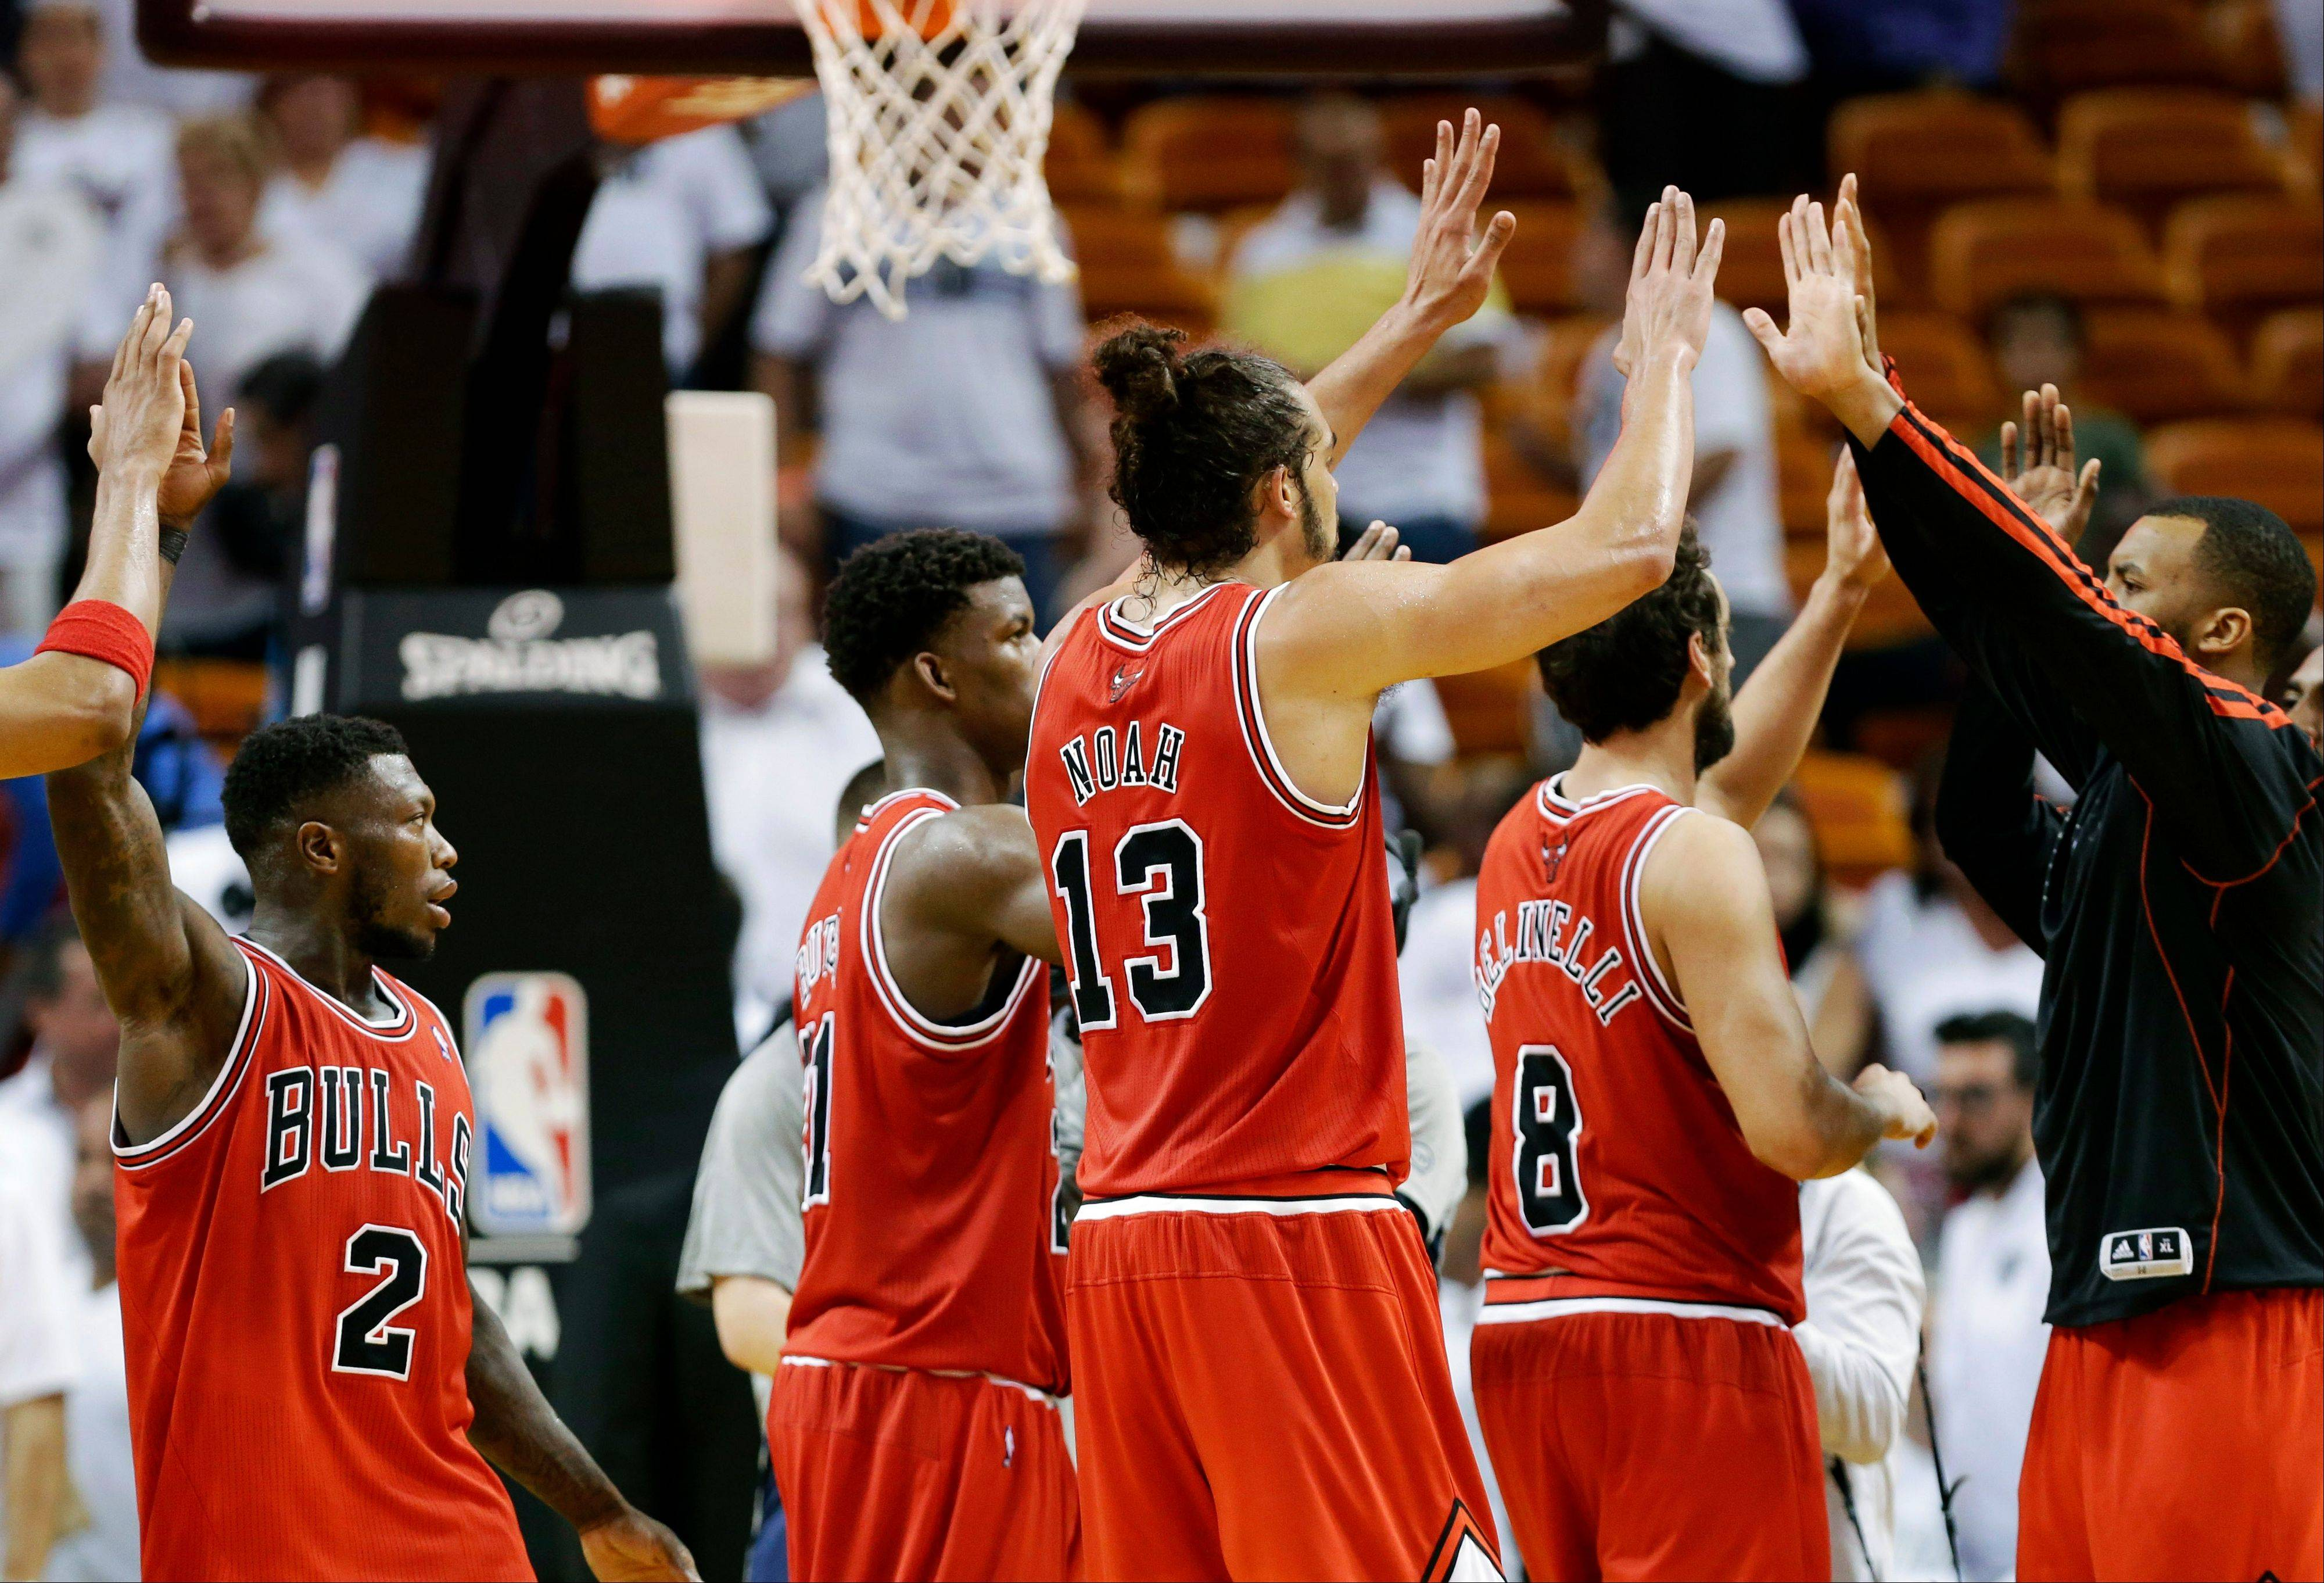 Chicago Bulls' Nate Robinson (2) and Joakim Noah (13) celebrate with their teammates after defeating the Miami Heat 93-86 in Game 1 of their NBA basketball playoff series in the Eastern Conference semifinals, Monday, May 6, 2013, in Miami.